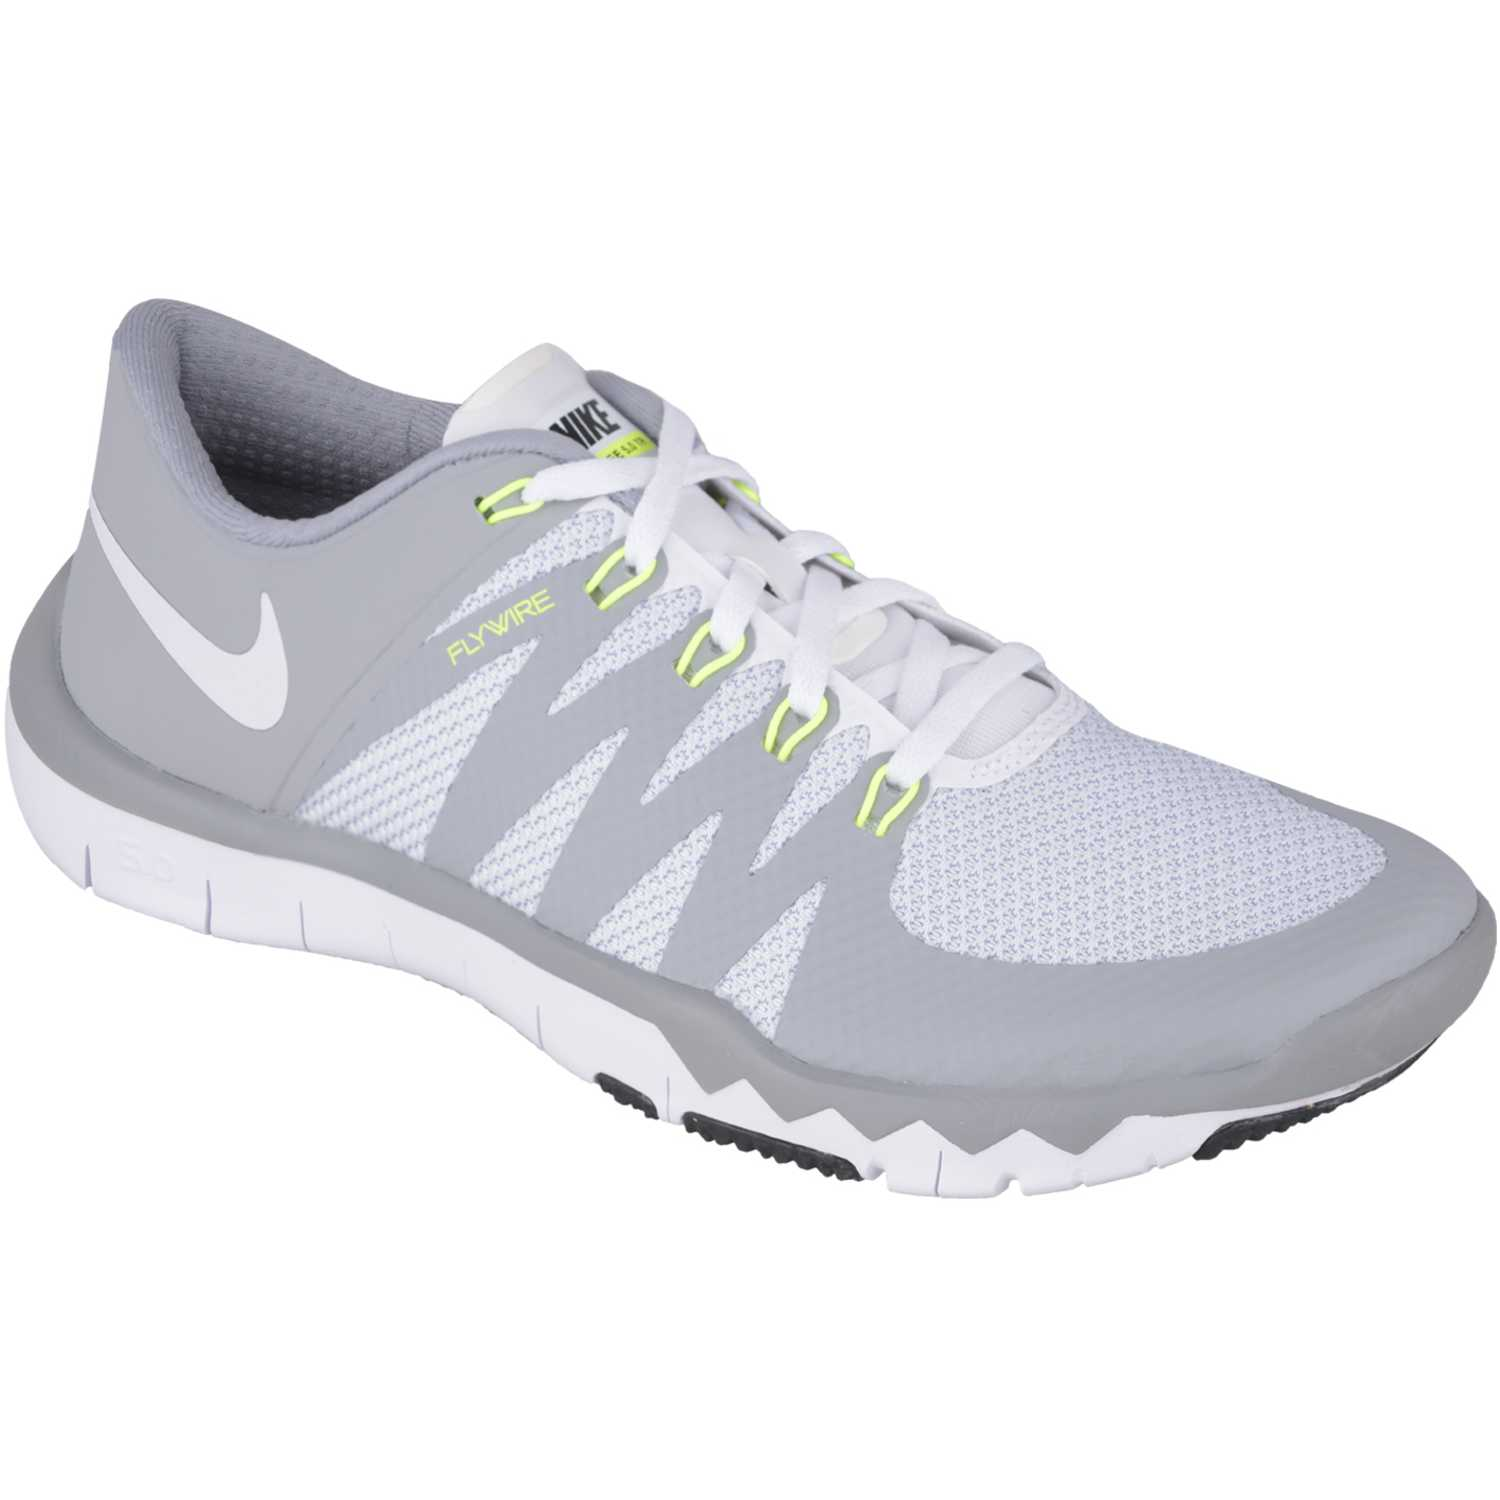 check out 807aa 90600 Fiesta de Mujer Nike gris / blanco free trainer 5.0 v6 ...